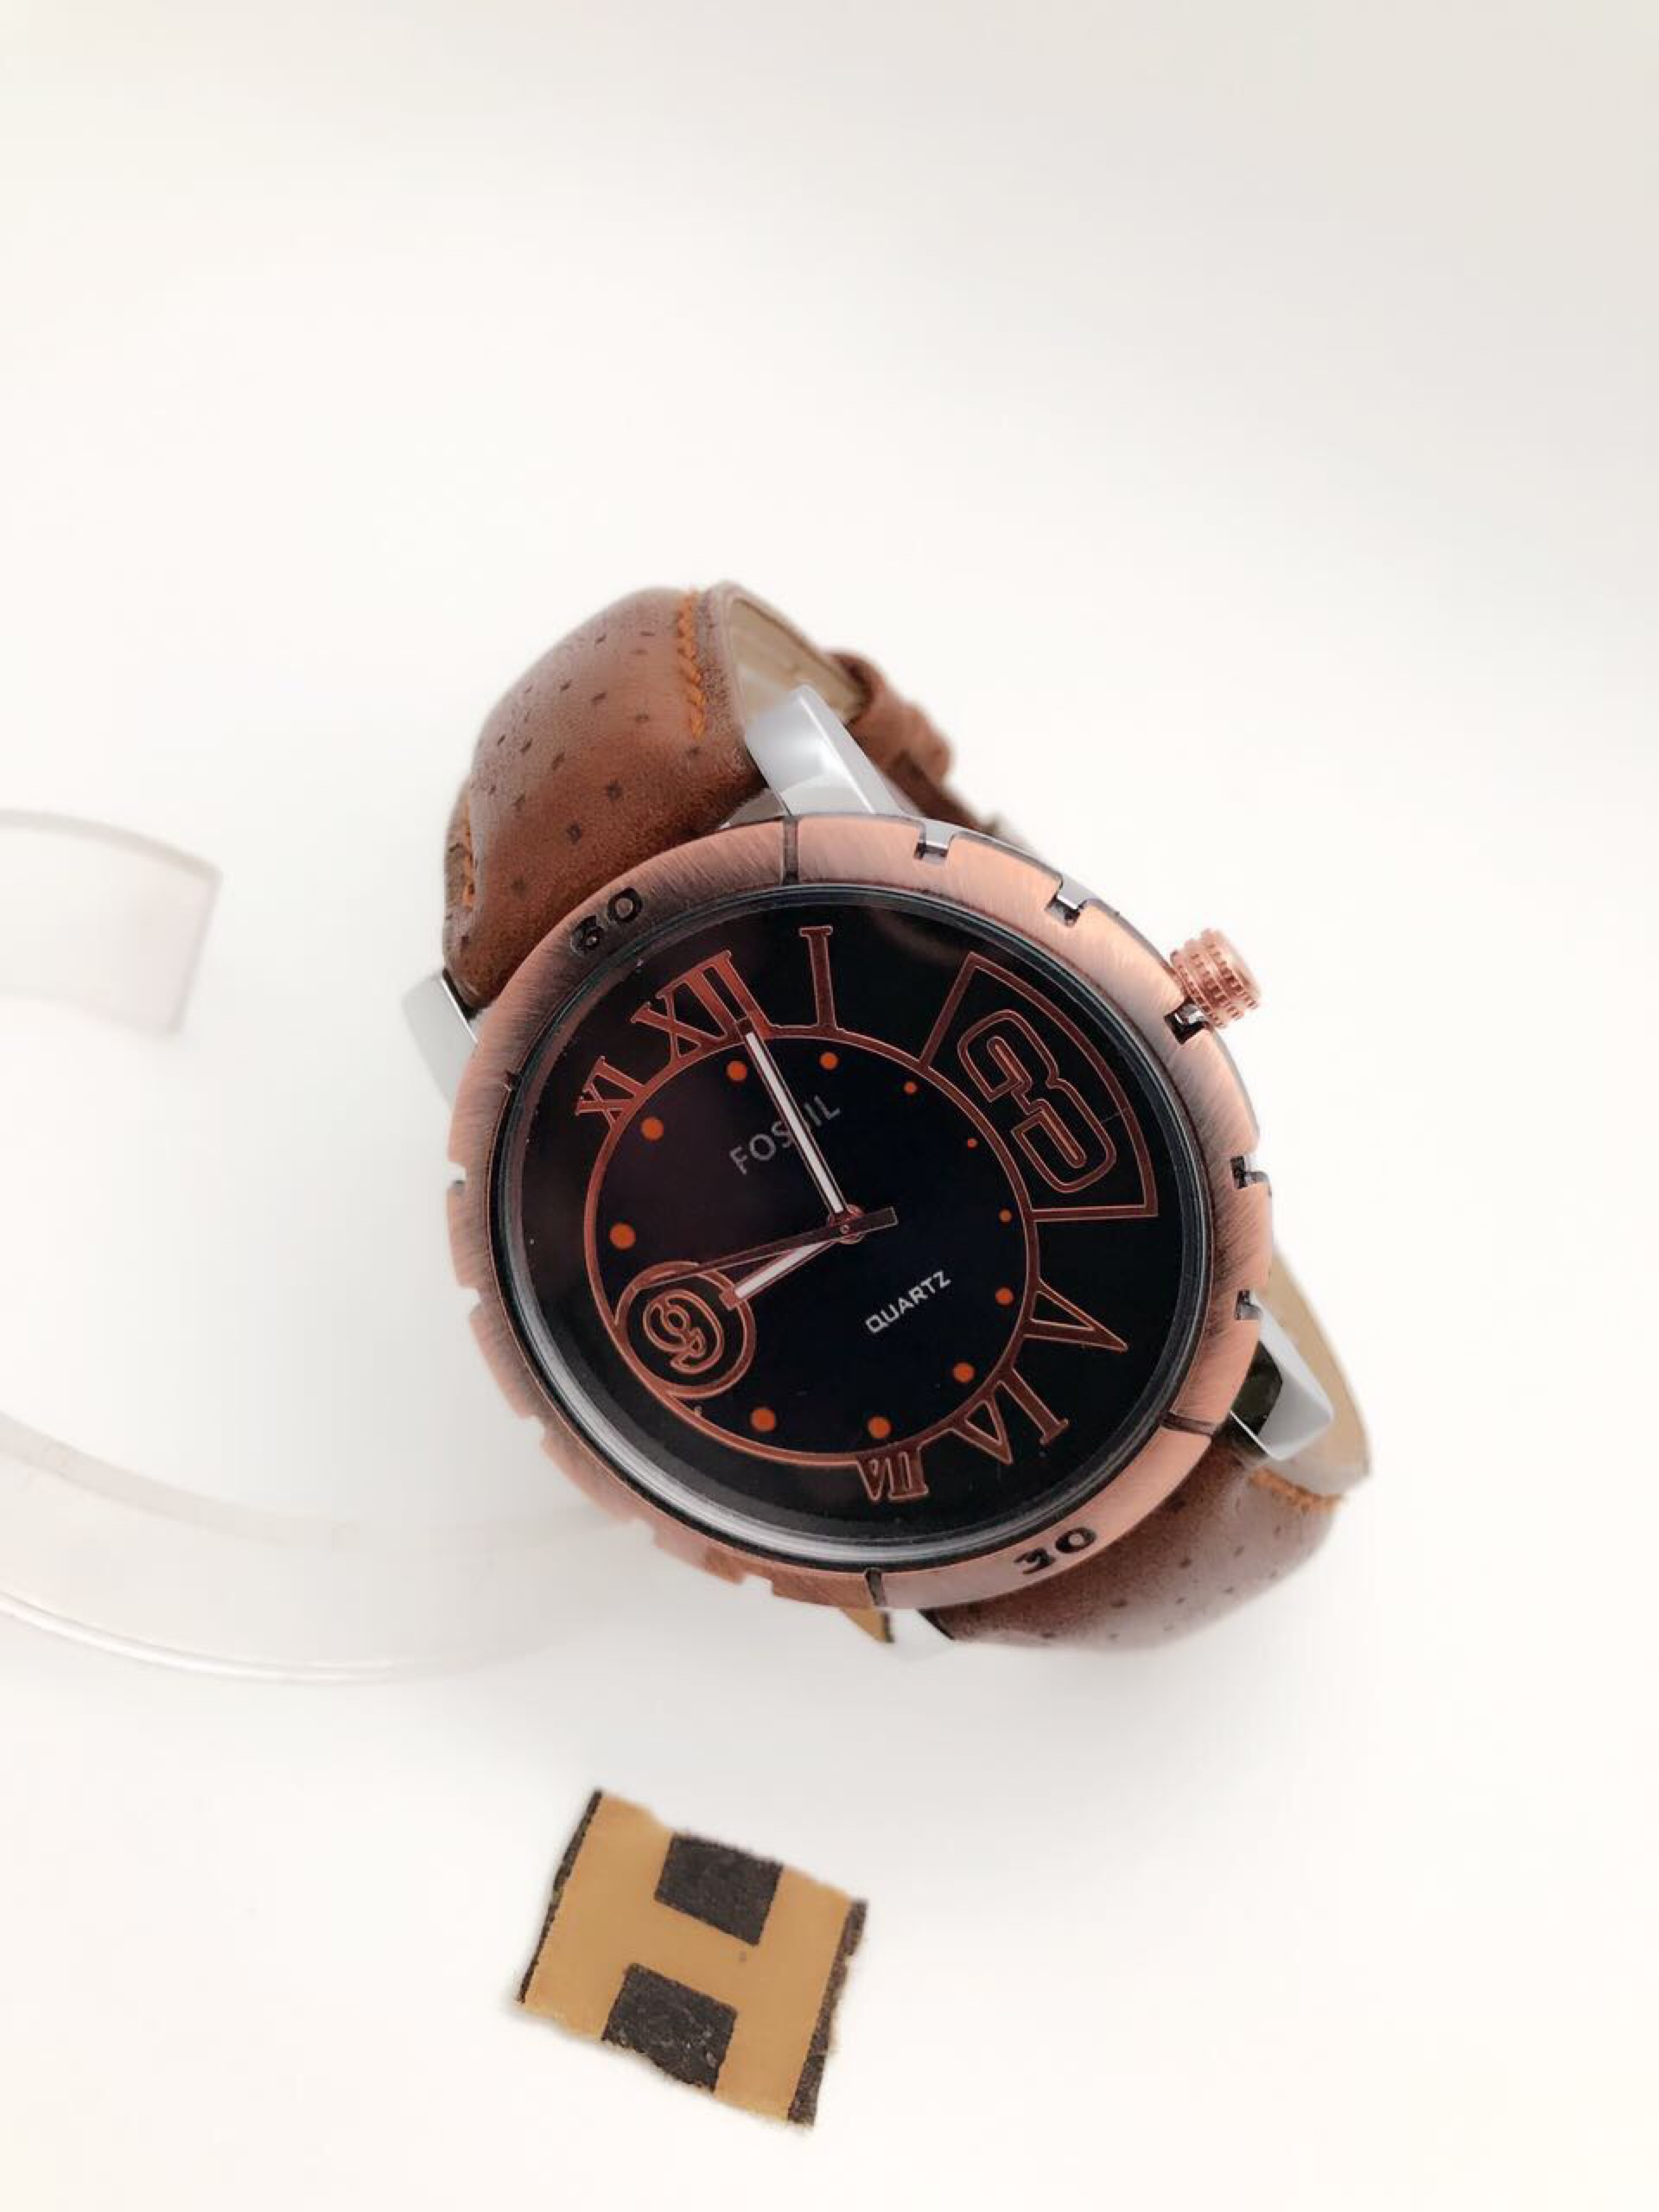 Sk Mens leather belt watch  Price 450/-+ shipping